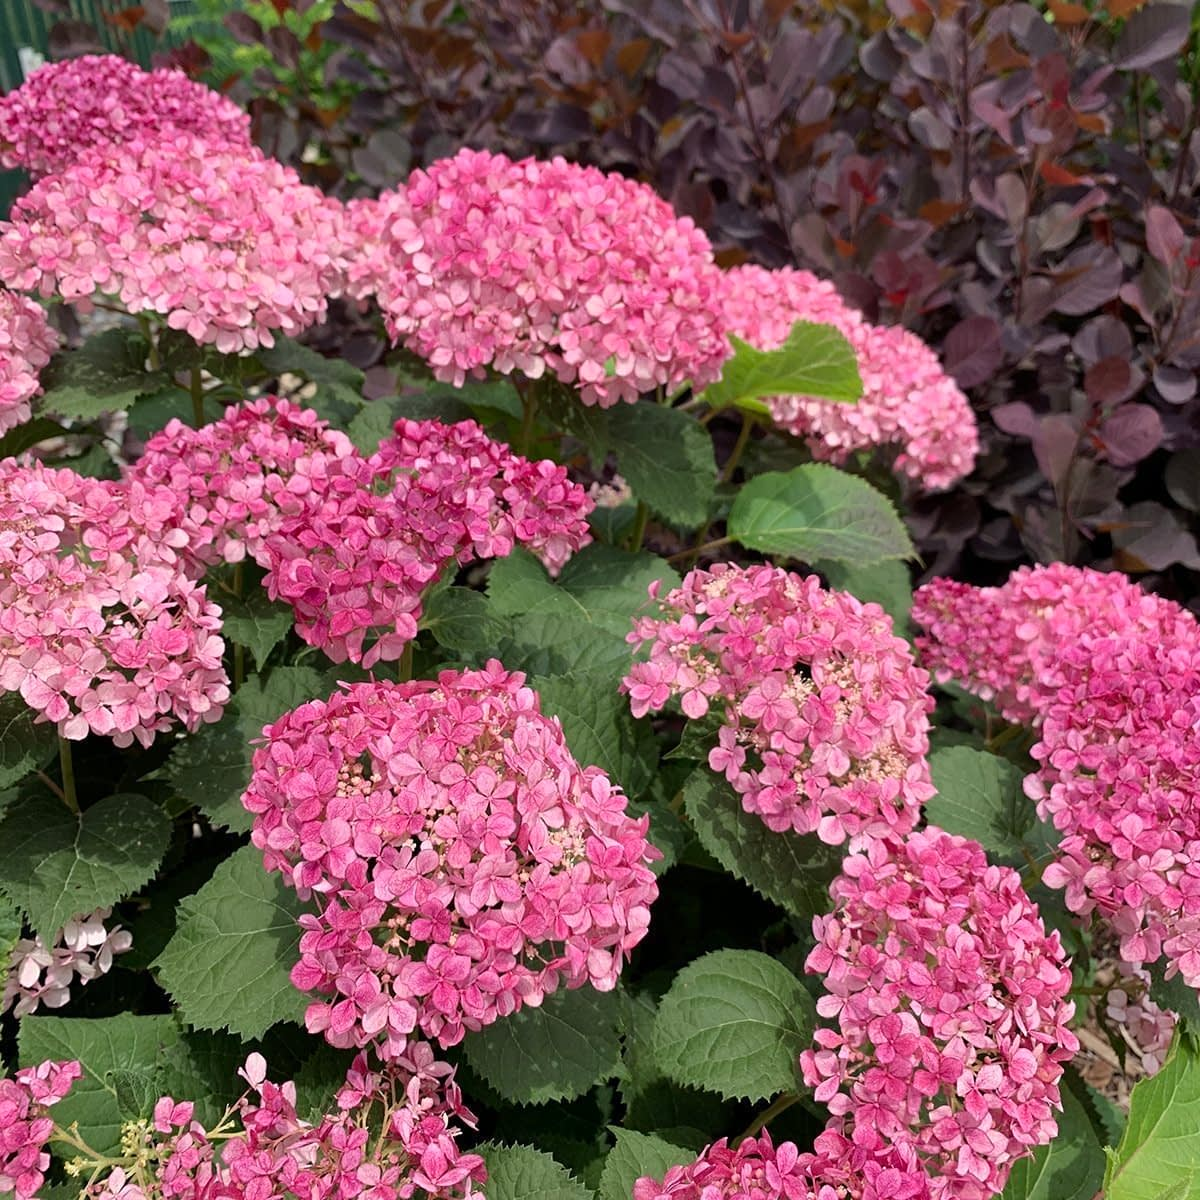 Close up of hydrangea full of large pink blooms with burgundy ninebark